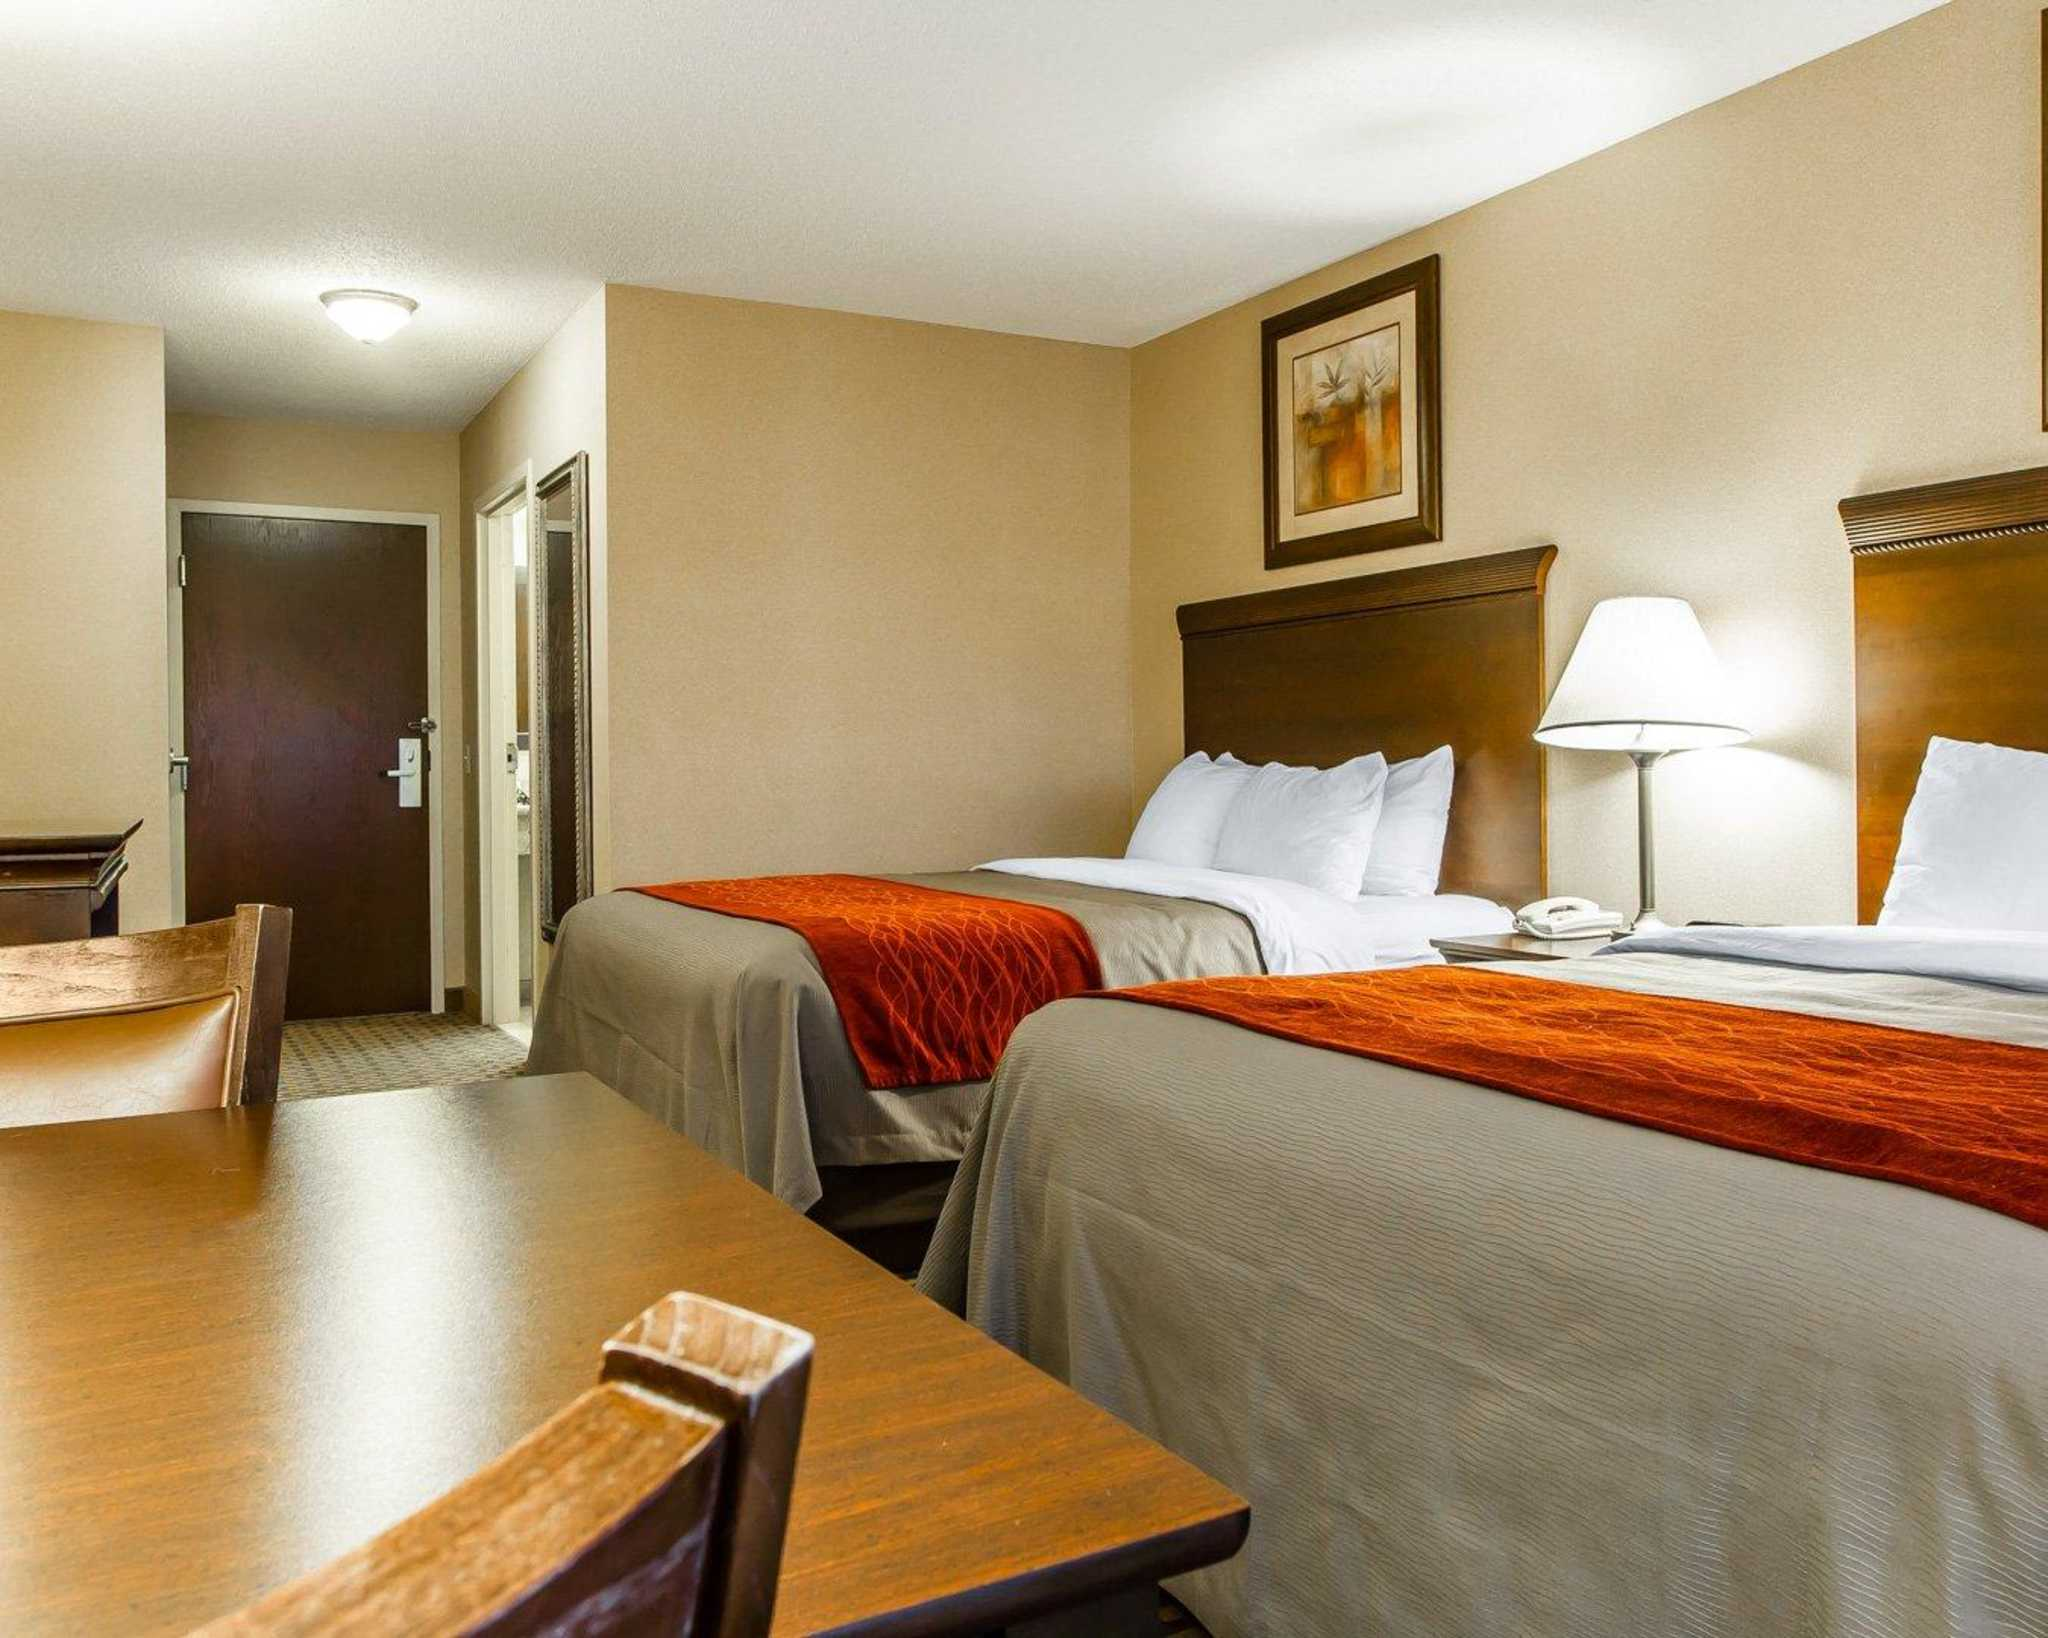 Hotel Room With Suites Near Millbrook On